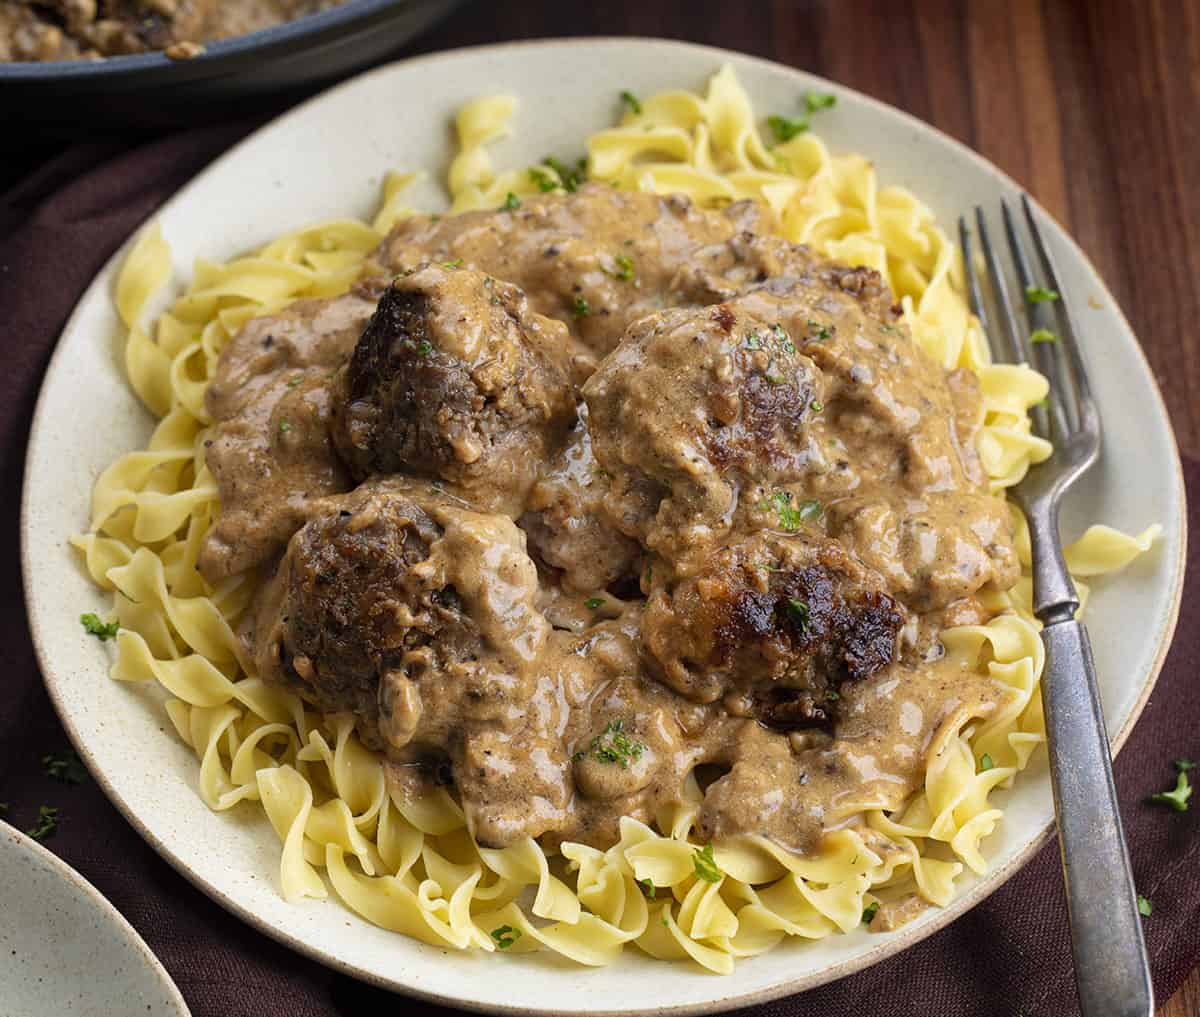 Plate with noodles and Authentic Swedish Meatballs